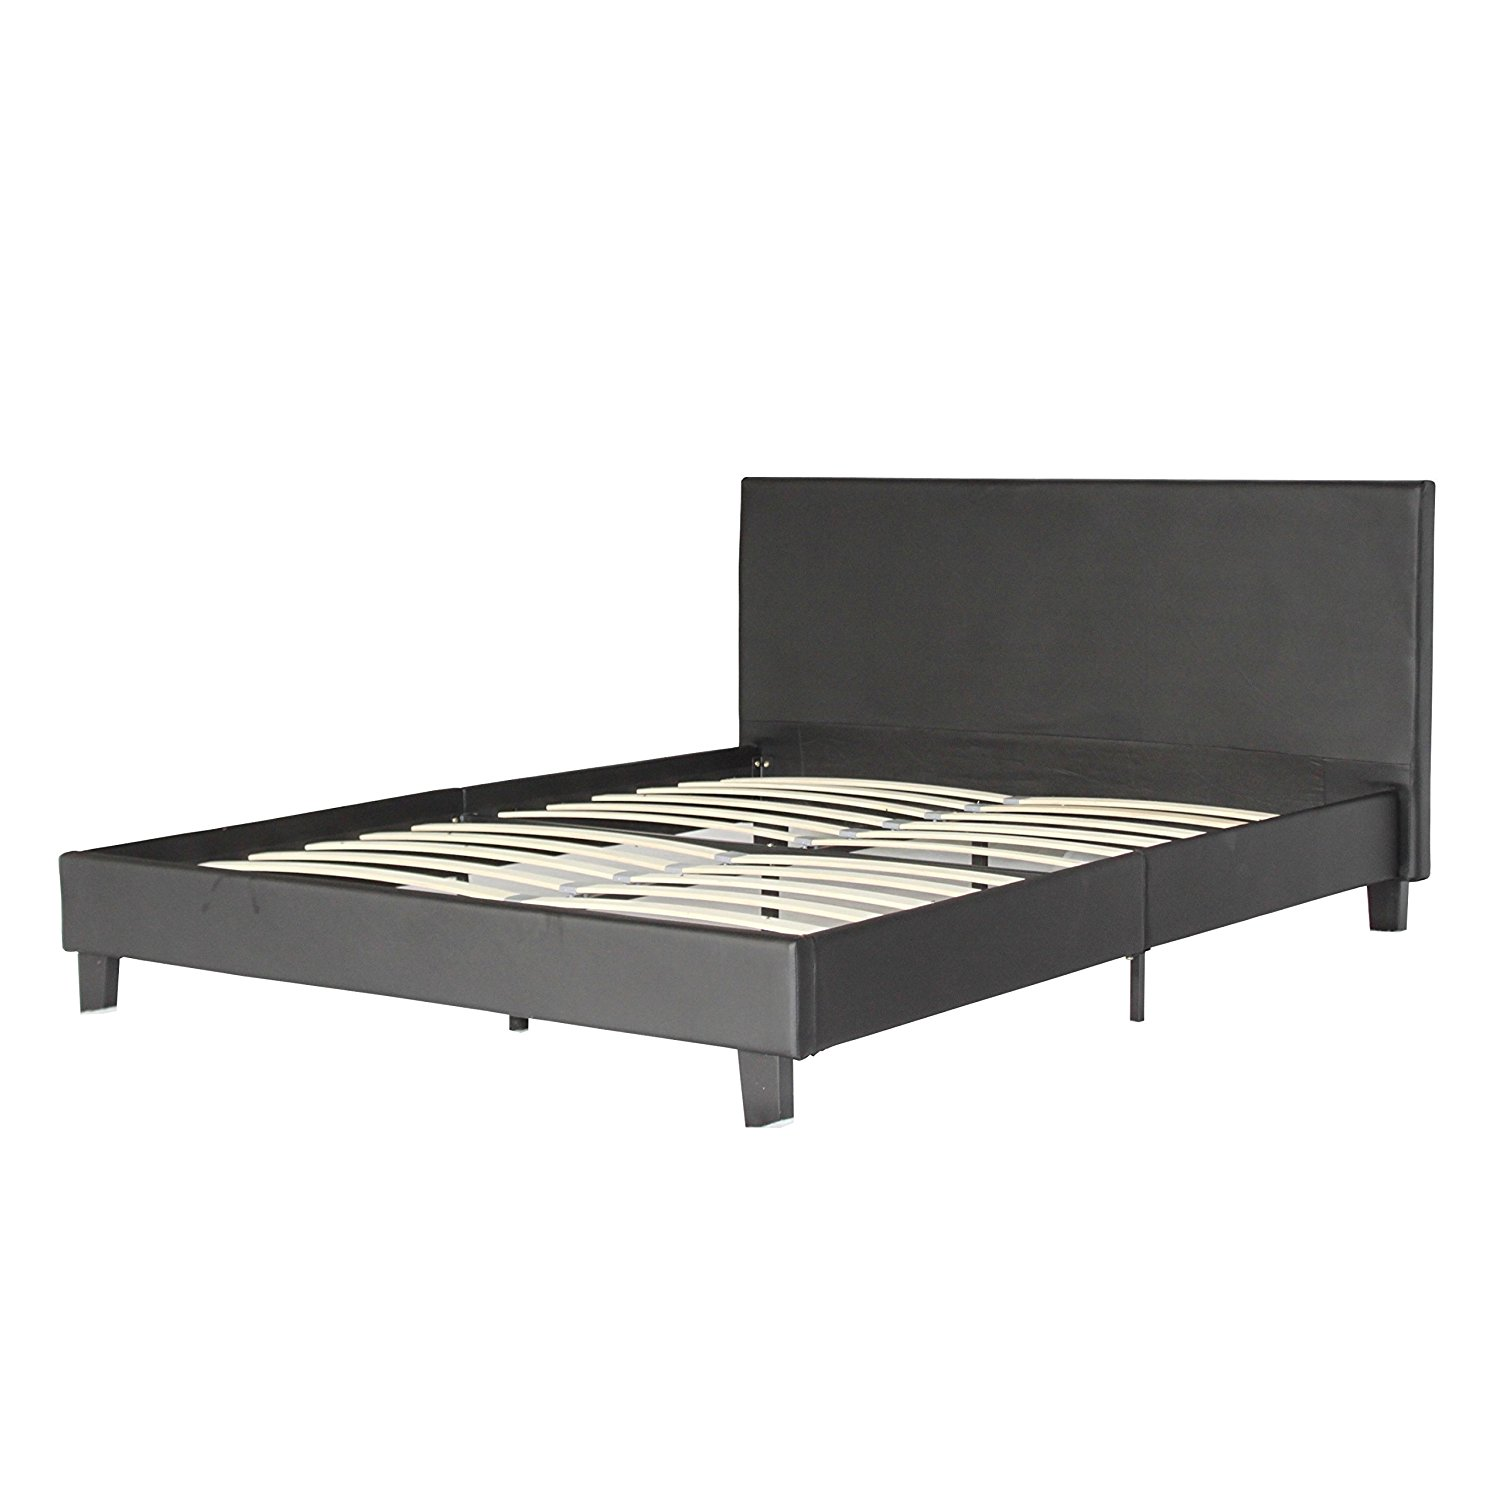 Container Furniture Direct Walker Collection Modern Faux Leather Platform Bed with Wooden Slats, Queen Size, Black